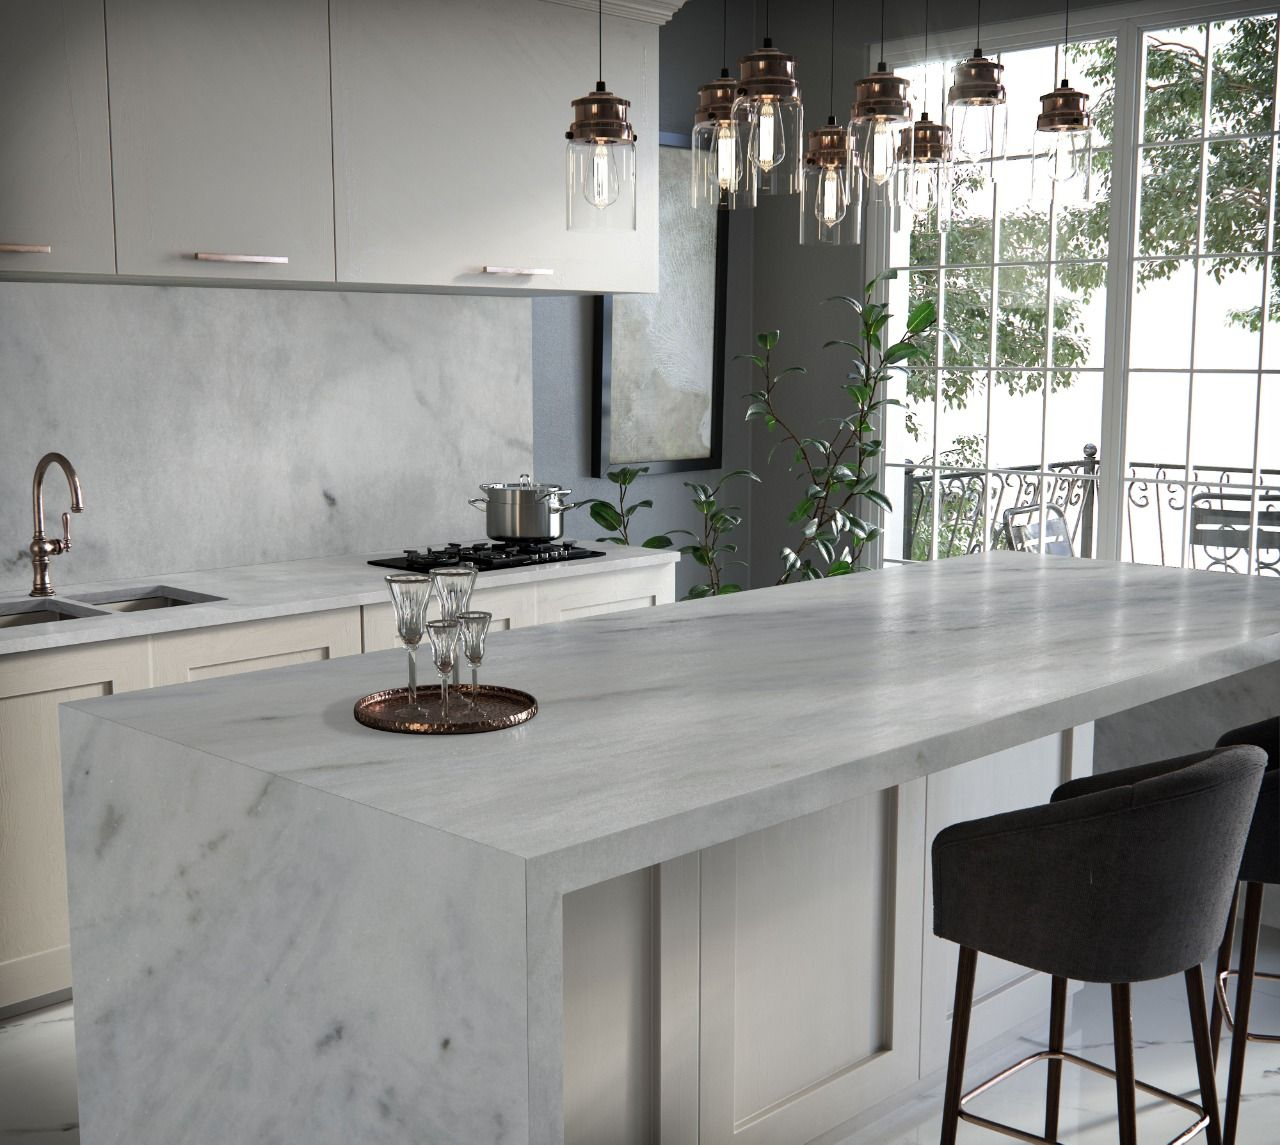 Brazilian Carrara Marble By Allure Natural Stone Toronto Interior Design Interior Design Shows Brooklyn Kitchen